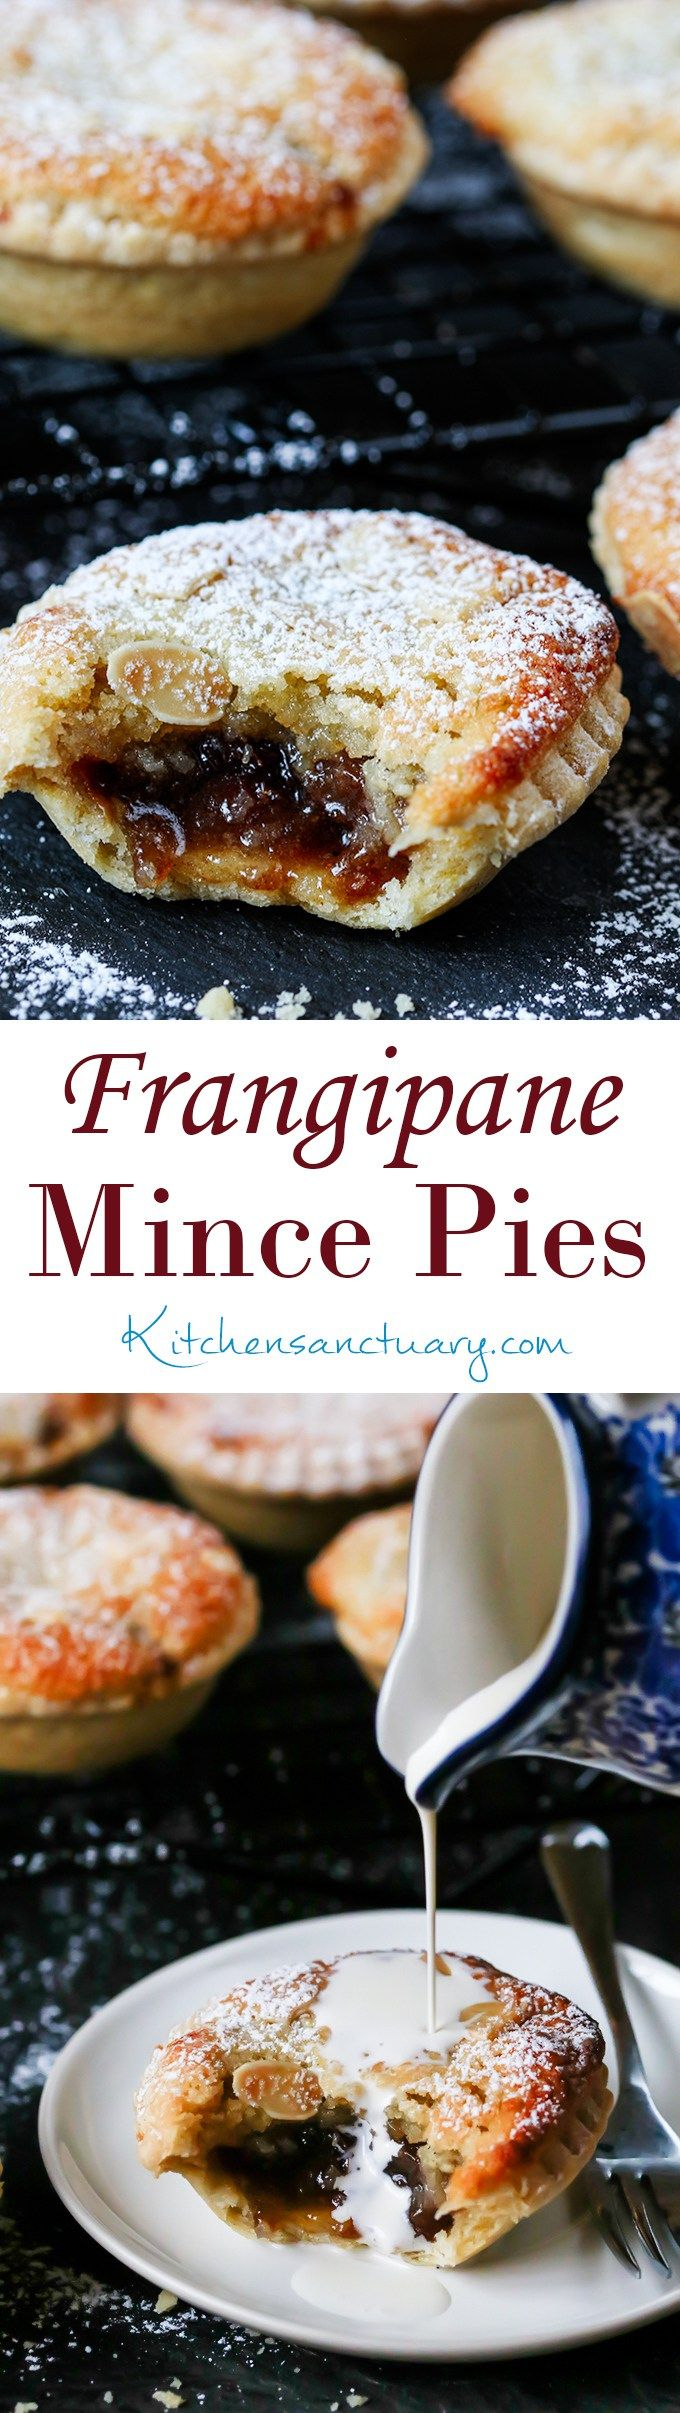 Frangipane Mince Pies with homemade pastry use favorite gf pastry - serve warm or cold.